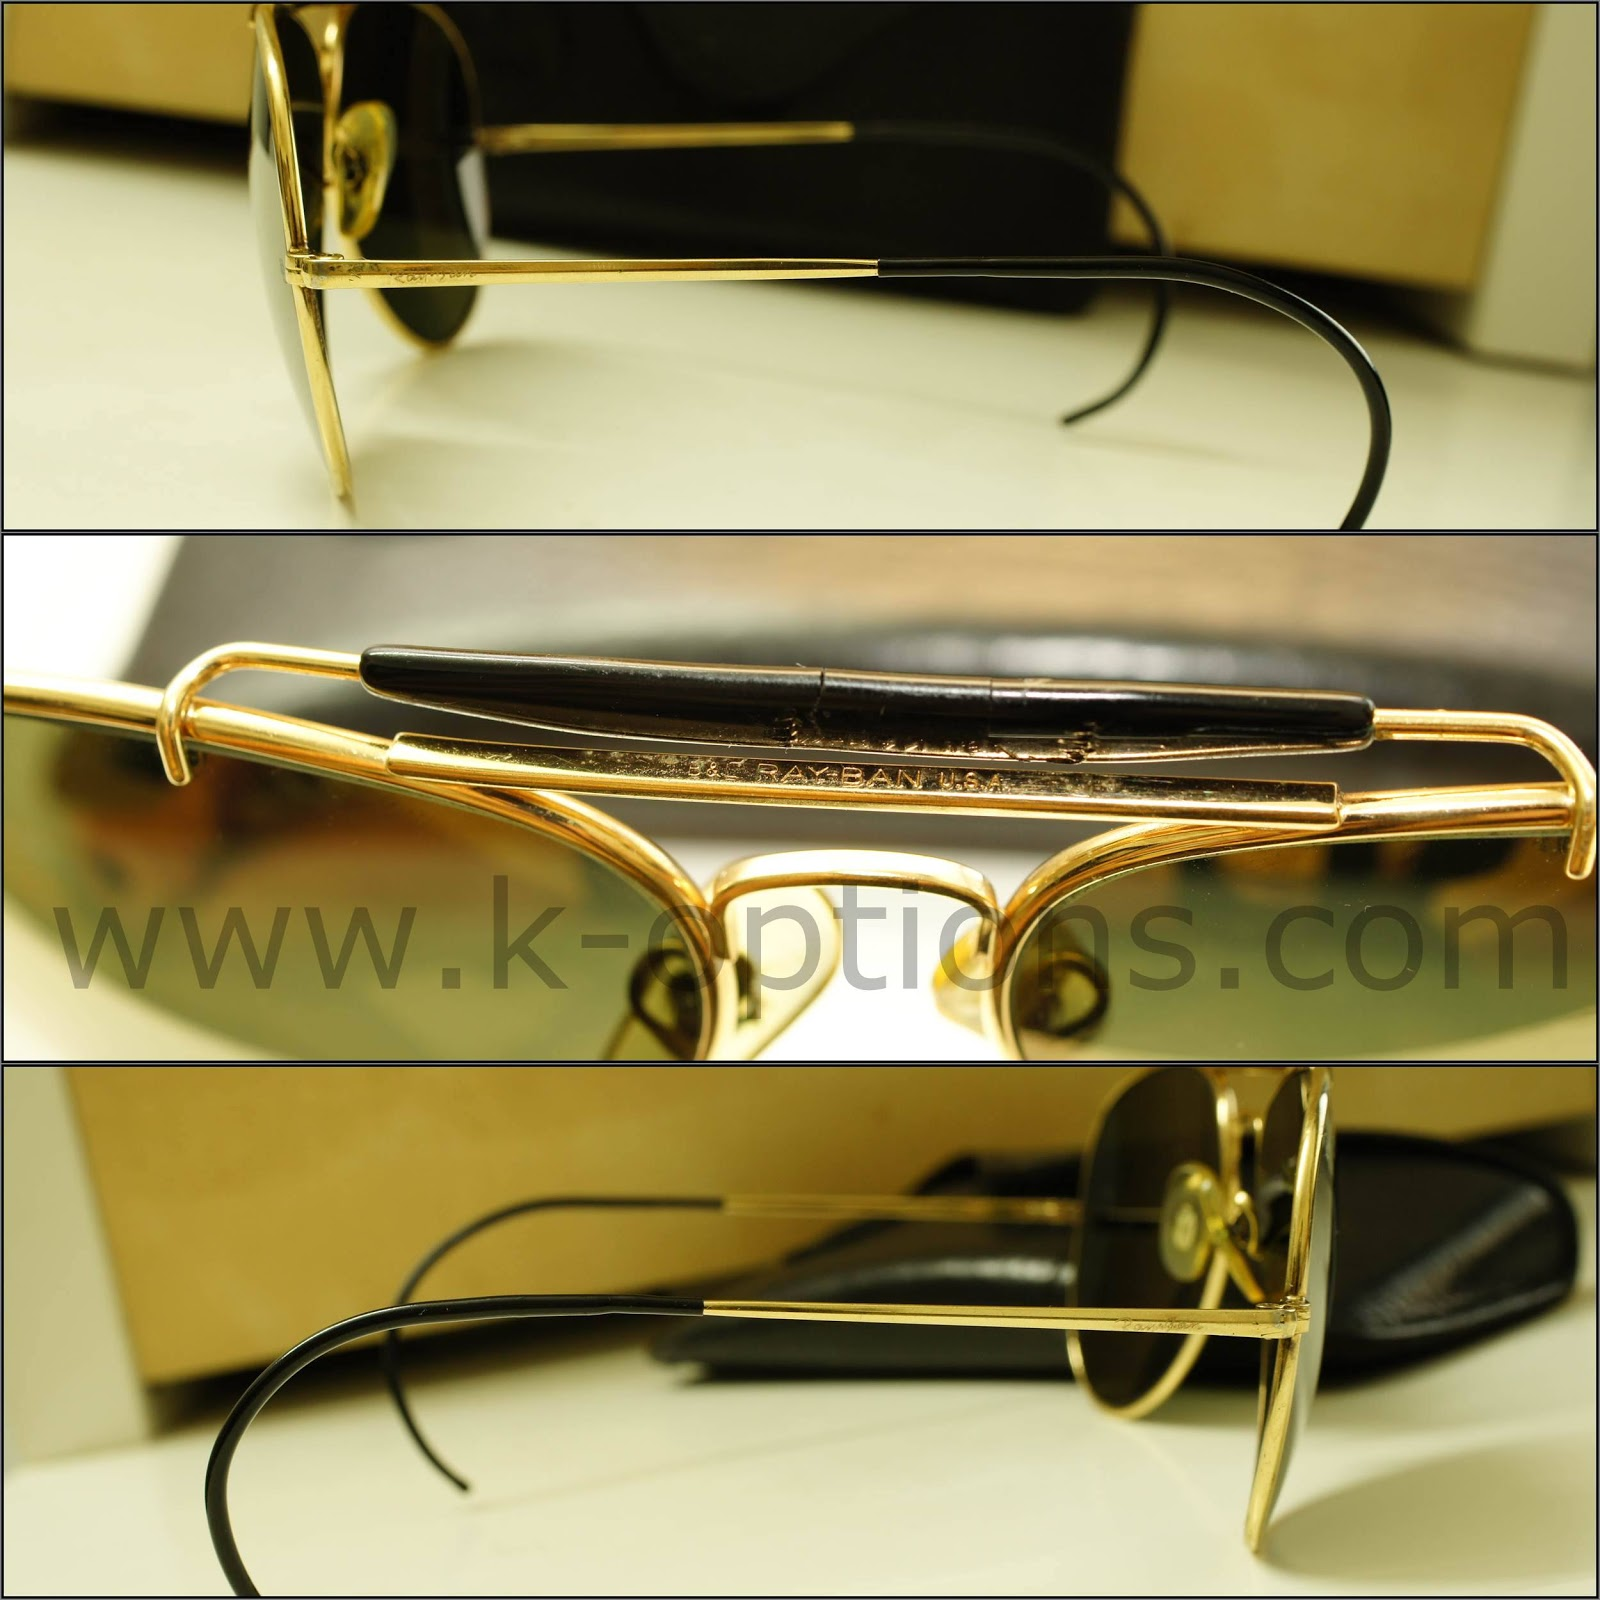 7c7df3f7ca Item   Ray Ban Outdoorsman Arista Diamond Hard Paddle Spring 62mm.  Description   Item selling as in pictures offer sun-glass with its original  cover.